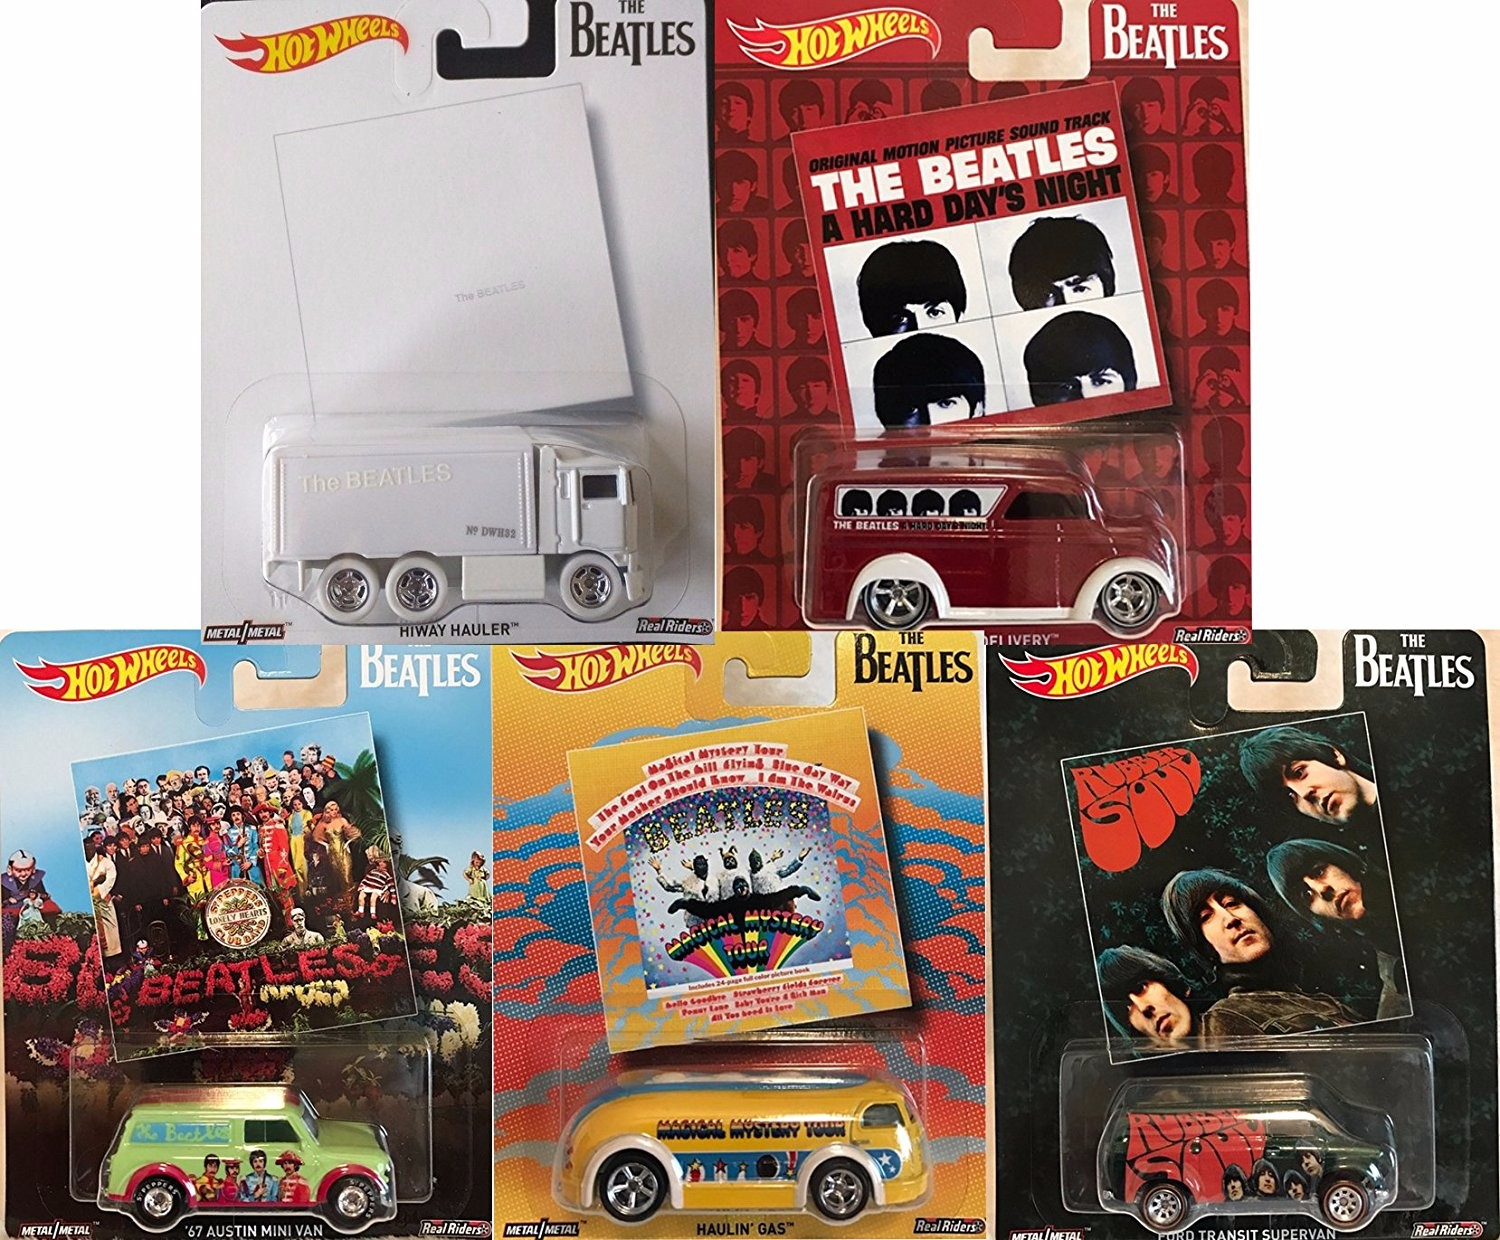 Hot Wheels Pop Culture The Beatles, Premium Adult Collectible Diecast Cars, Set of 5 by